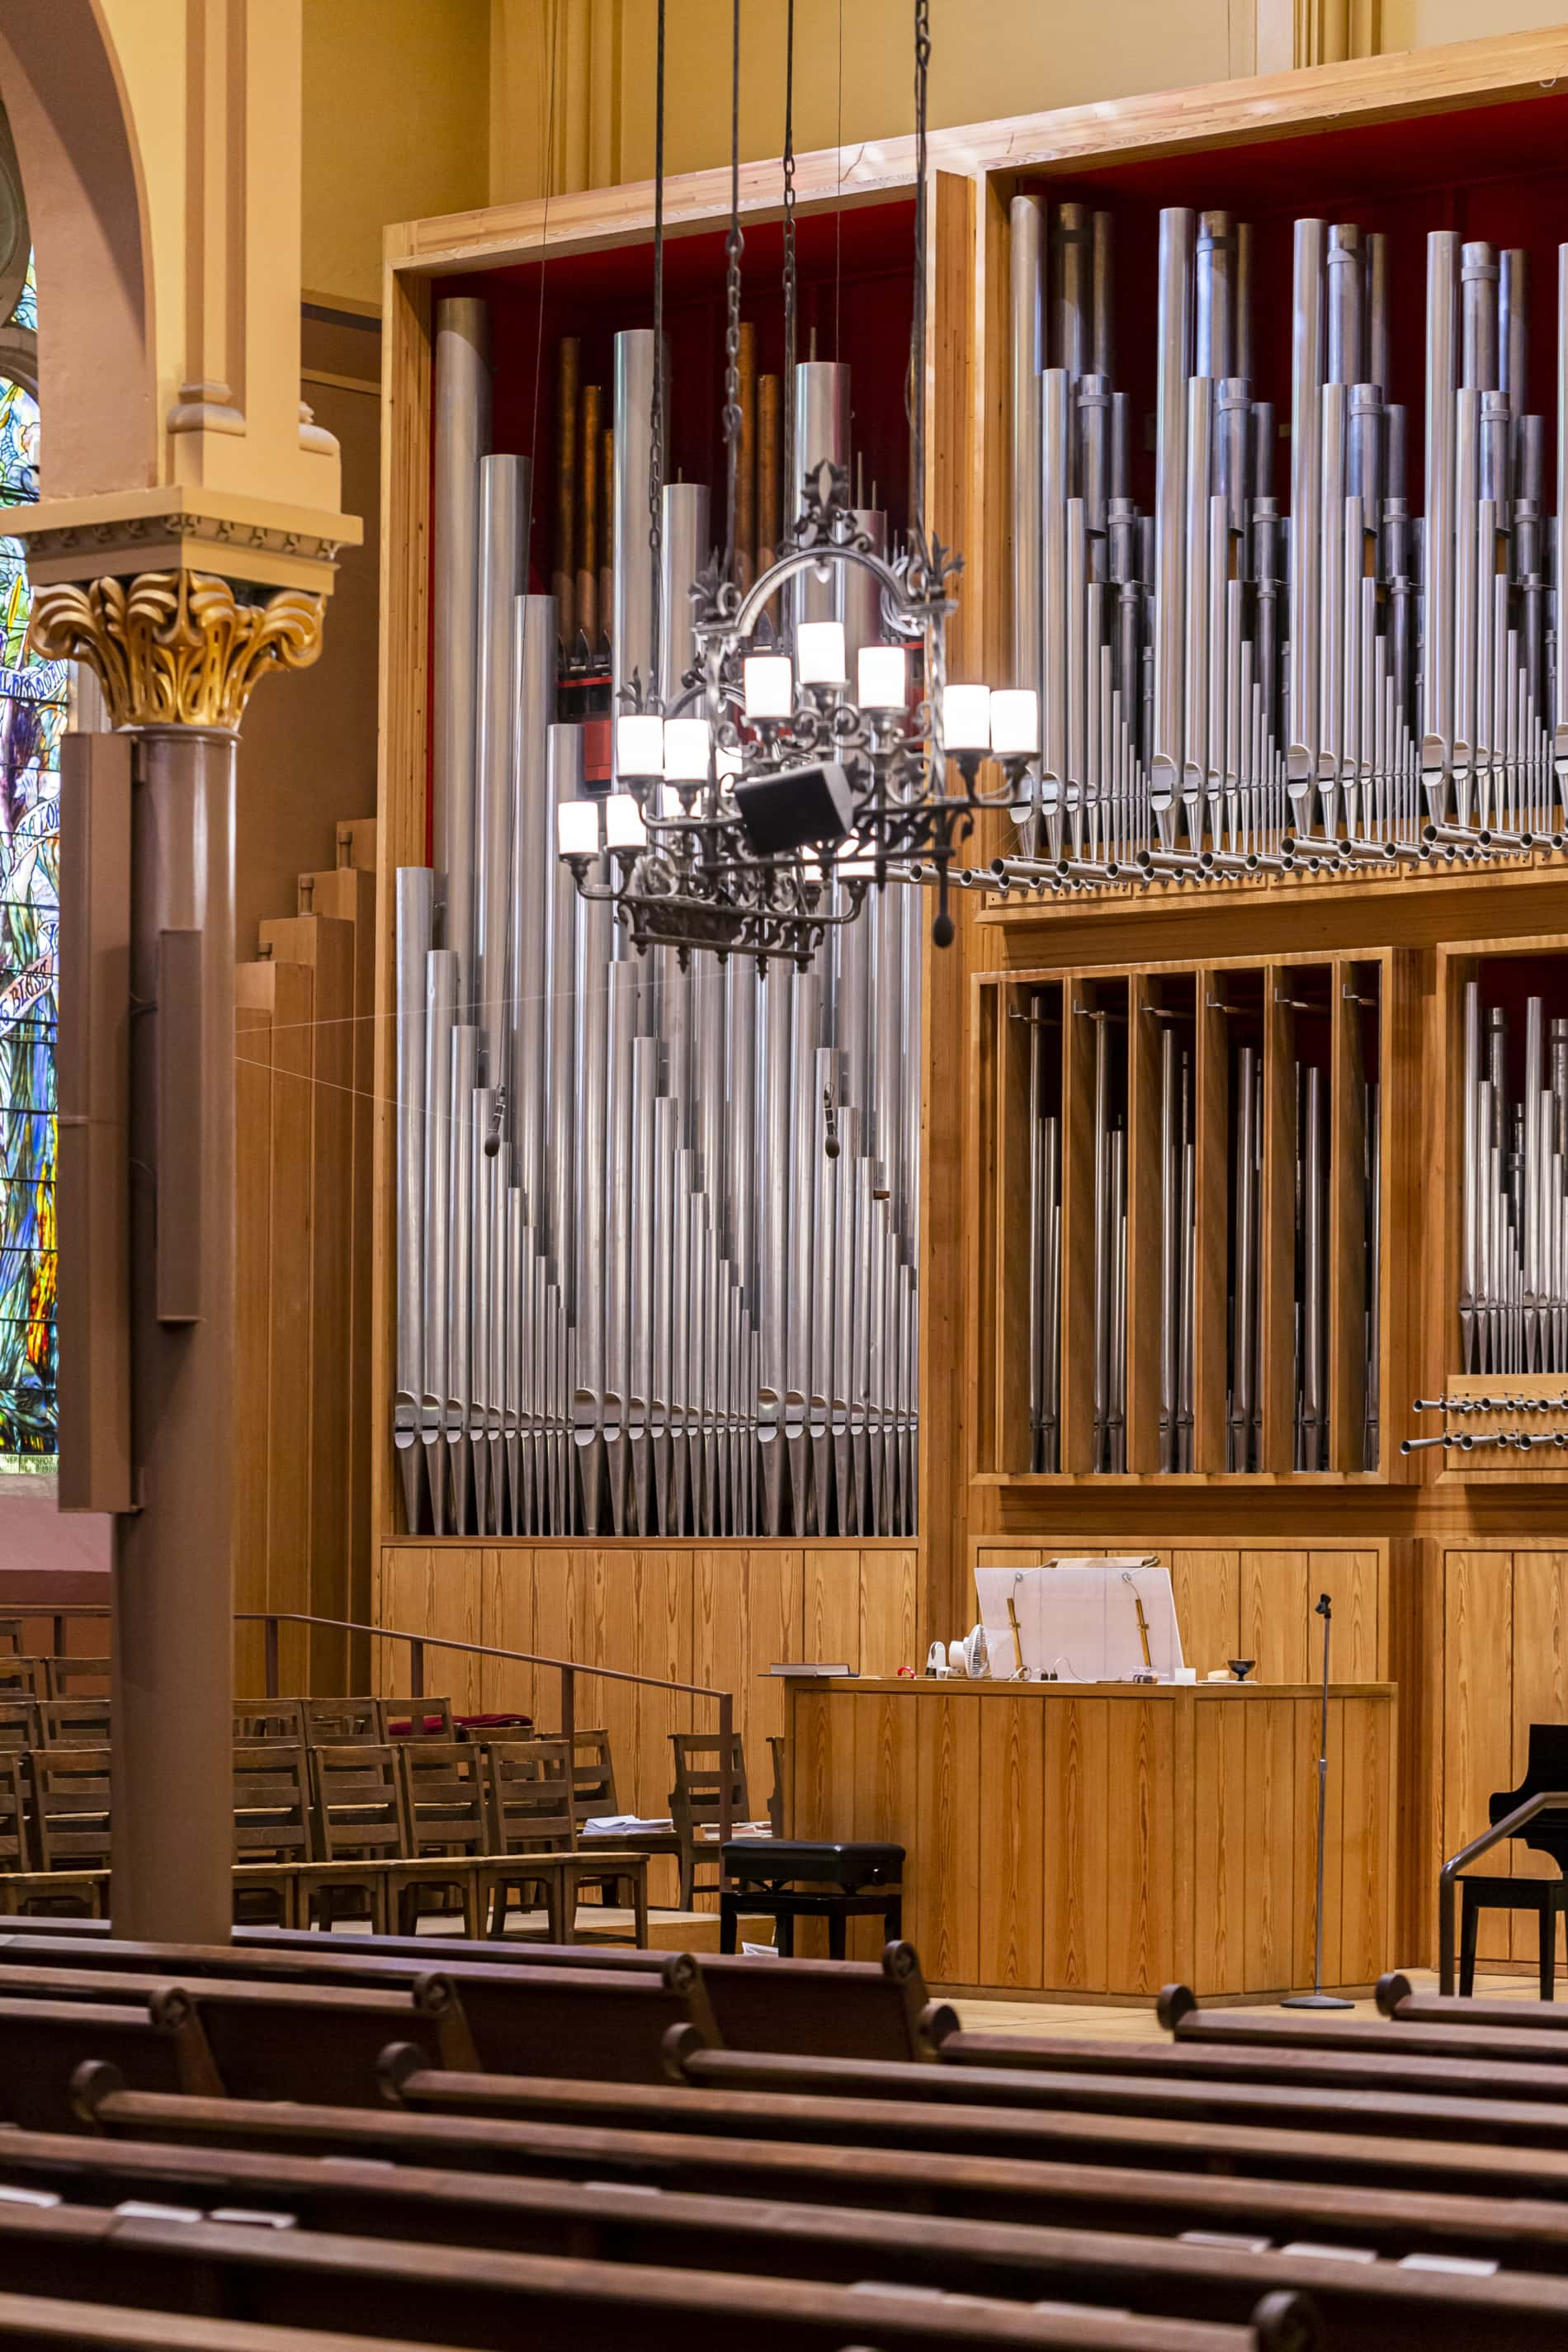 Organ pipes in the Sanctuary of First Church in Cambridge. A wrought iron chandelier hangs in the foreground.